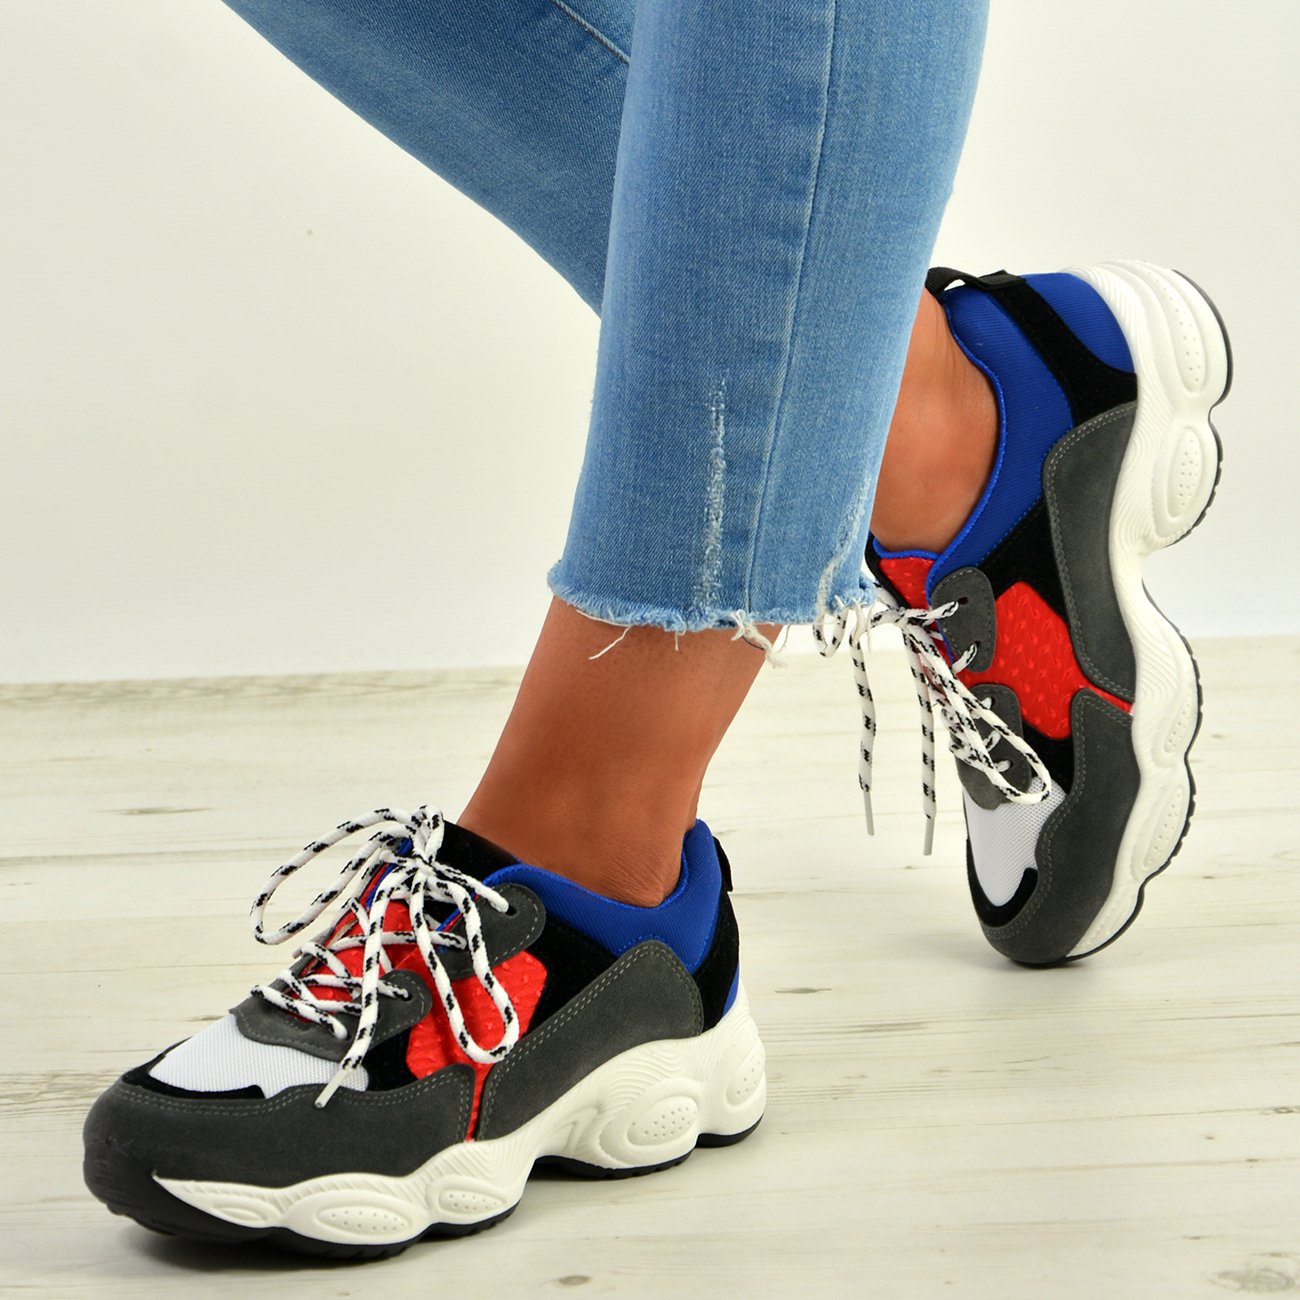 WOMENS-LADIES-RUNNING-GYM-CHUNKY-TRAINERS-SNEAKERS-SHOES-SIZE miniatura 12